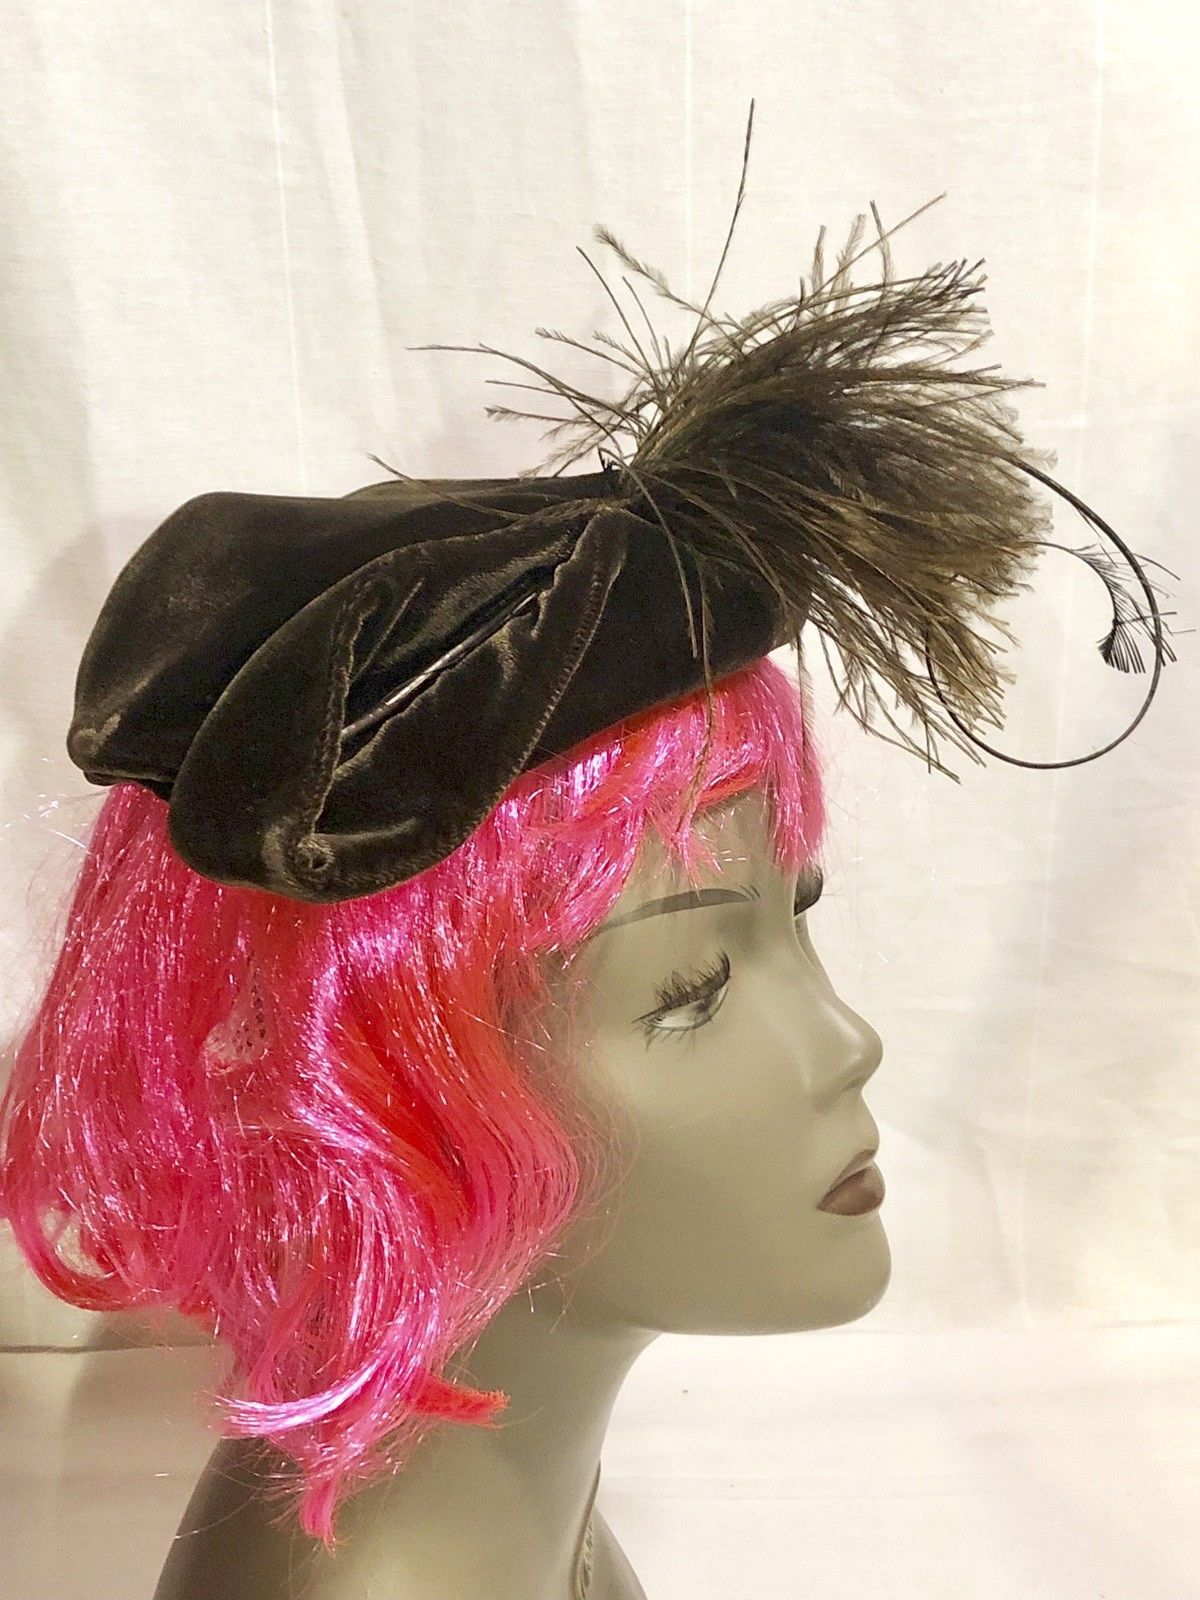 VINTAGE WOMEN'S BROWN VELVET FASCINATOR HAT WITH WHIMSICAL OSTRICH FEATHERS-30's